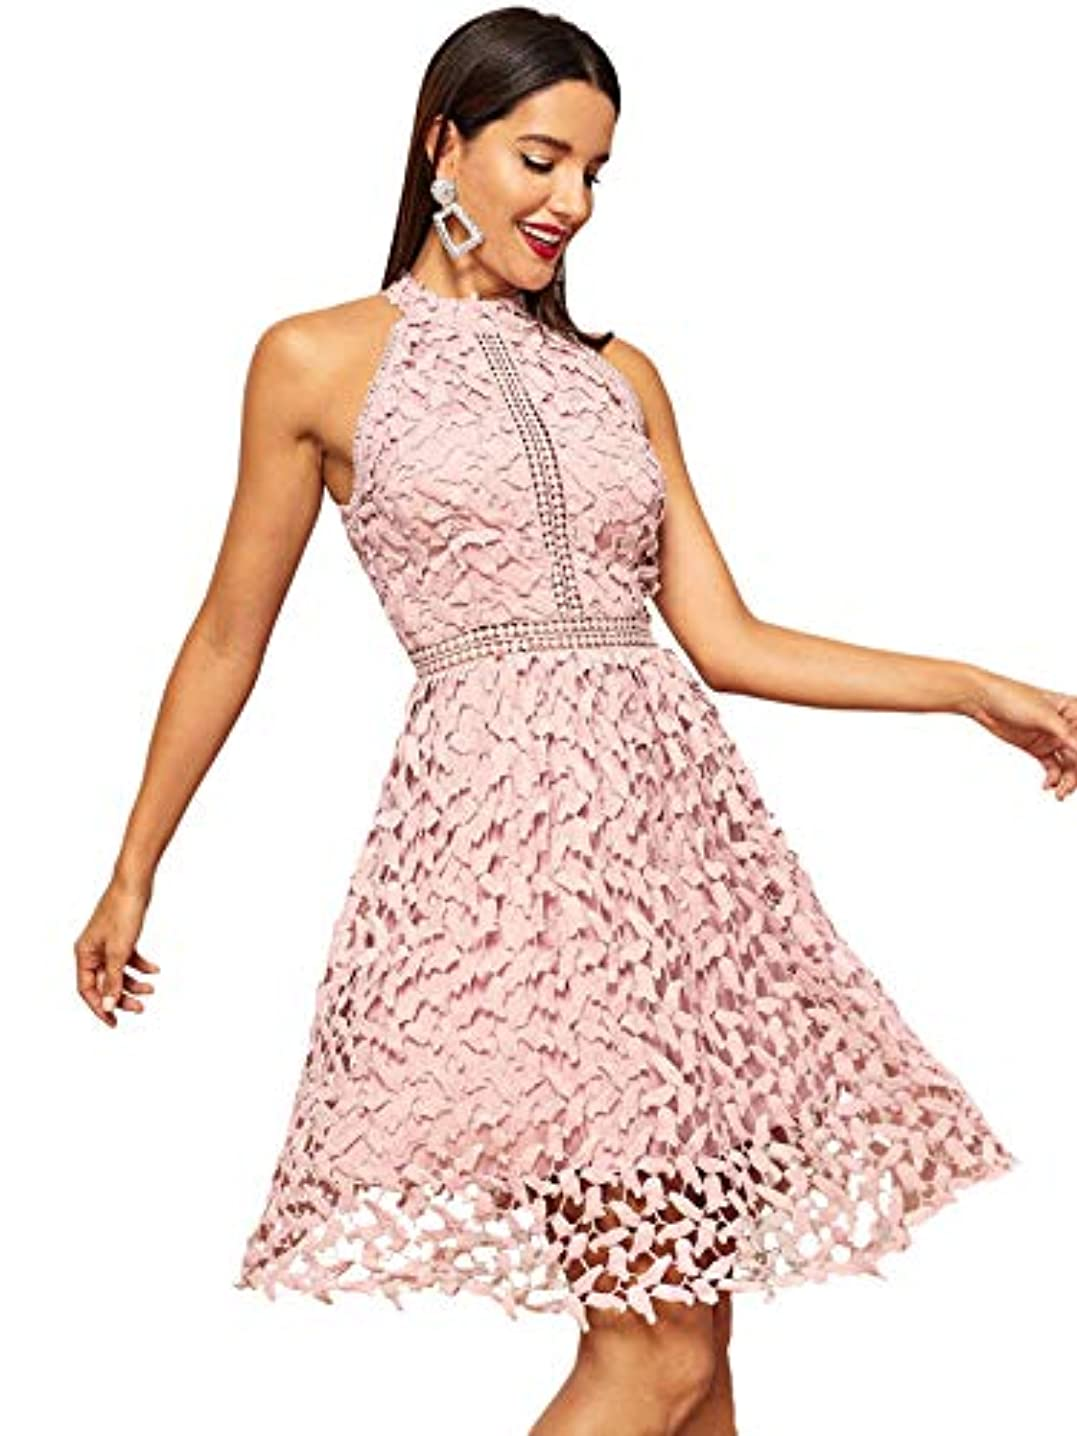 Floerns Women's Sleeveless Halter Neck Lace Cocktail Party A Line Dress